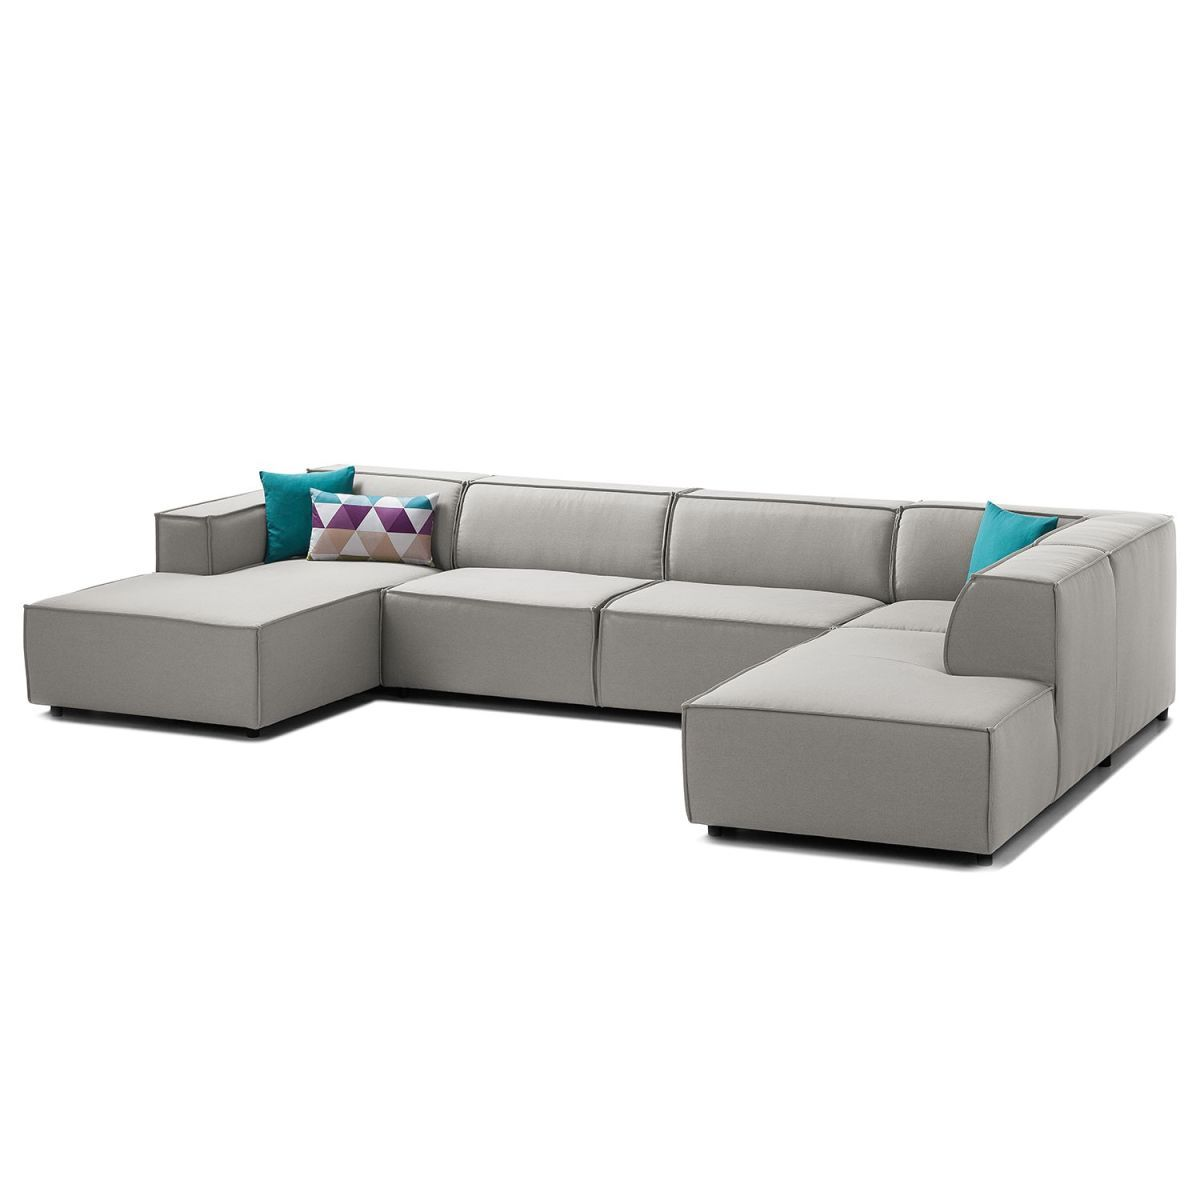 Ecksofa Toronto Pin By Ladendirekt On Sofas Couches Sofa Furniture Couch